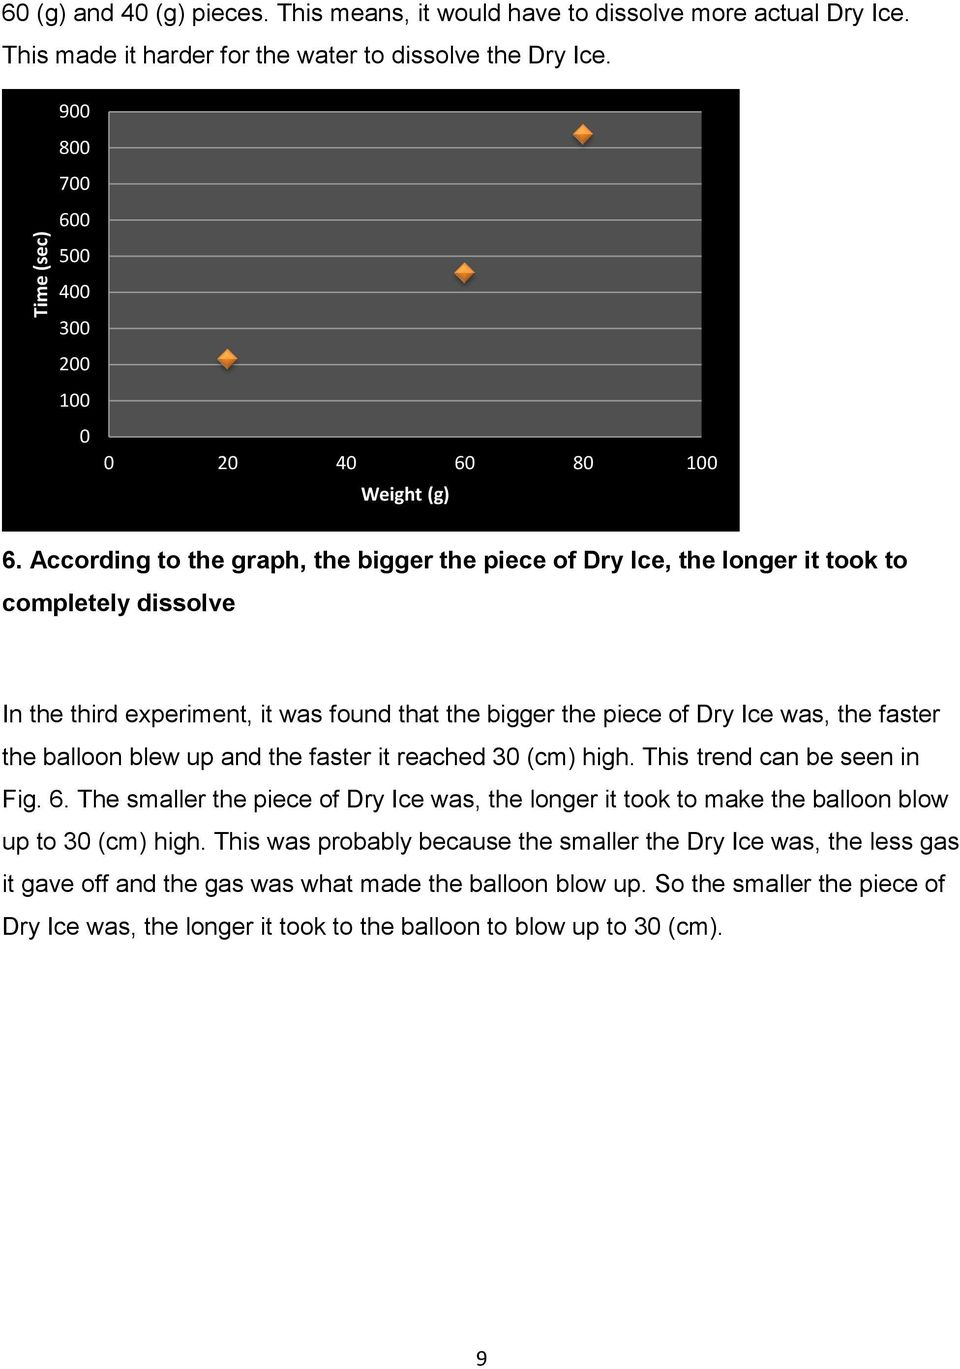 According to the graph, the bigger the piece of Dry Ice, the longer it took to completely dissolve In the third experiment, it was found that the bigger the piece of Dry Ice was, the faster the